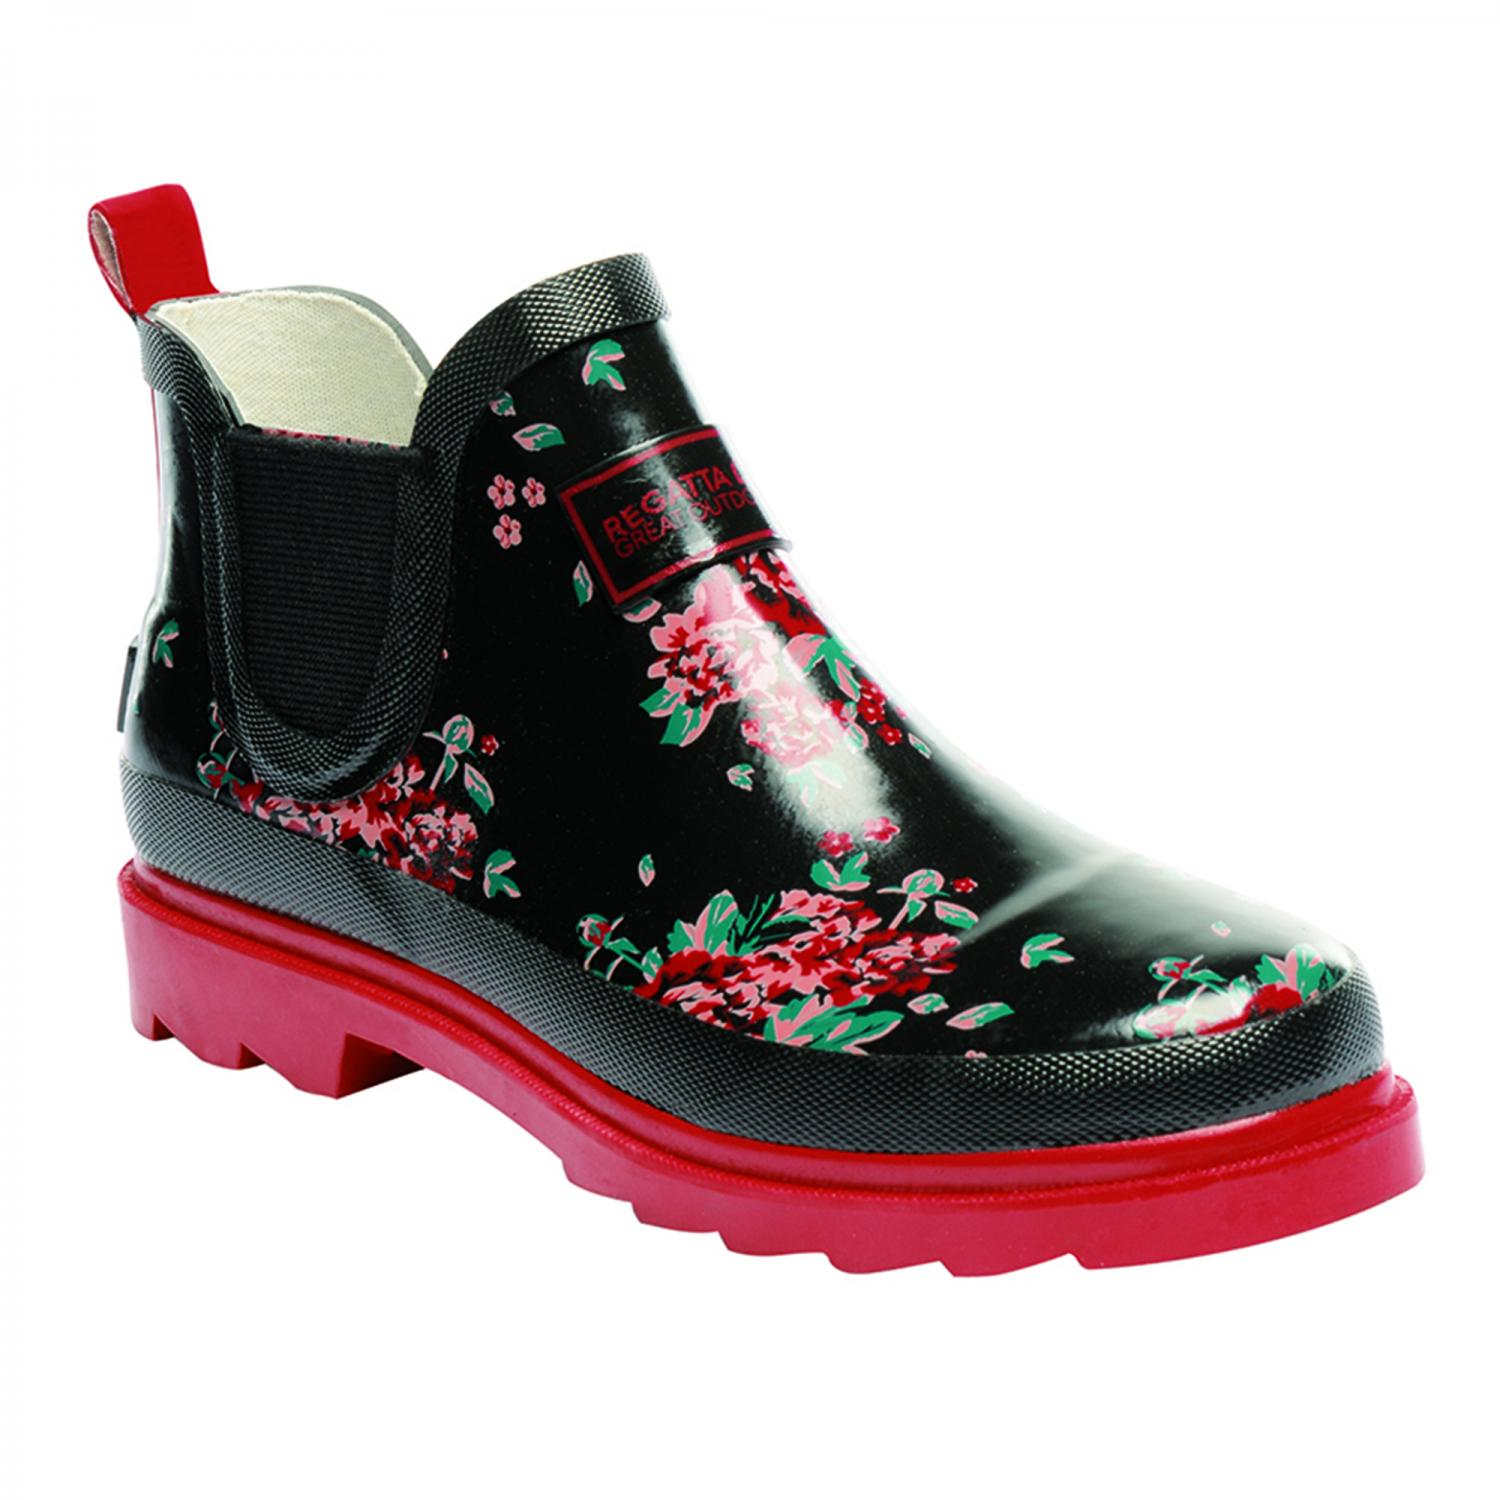 Lady Harper Low Wellington Boot Black Molten